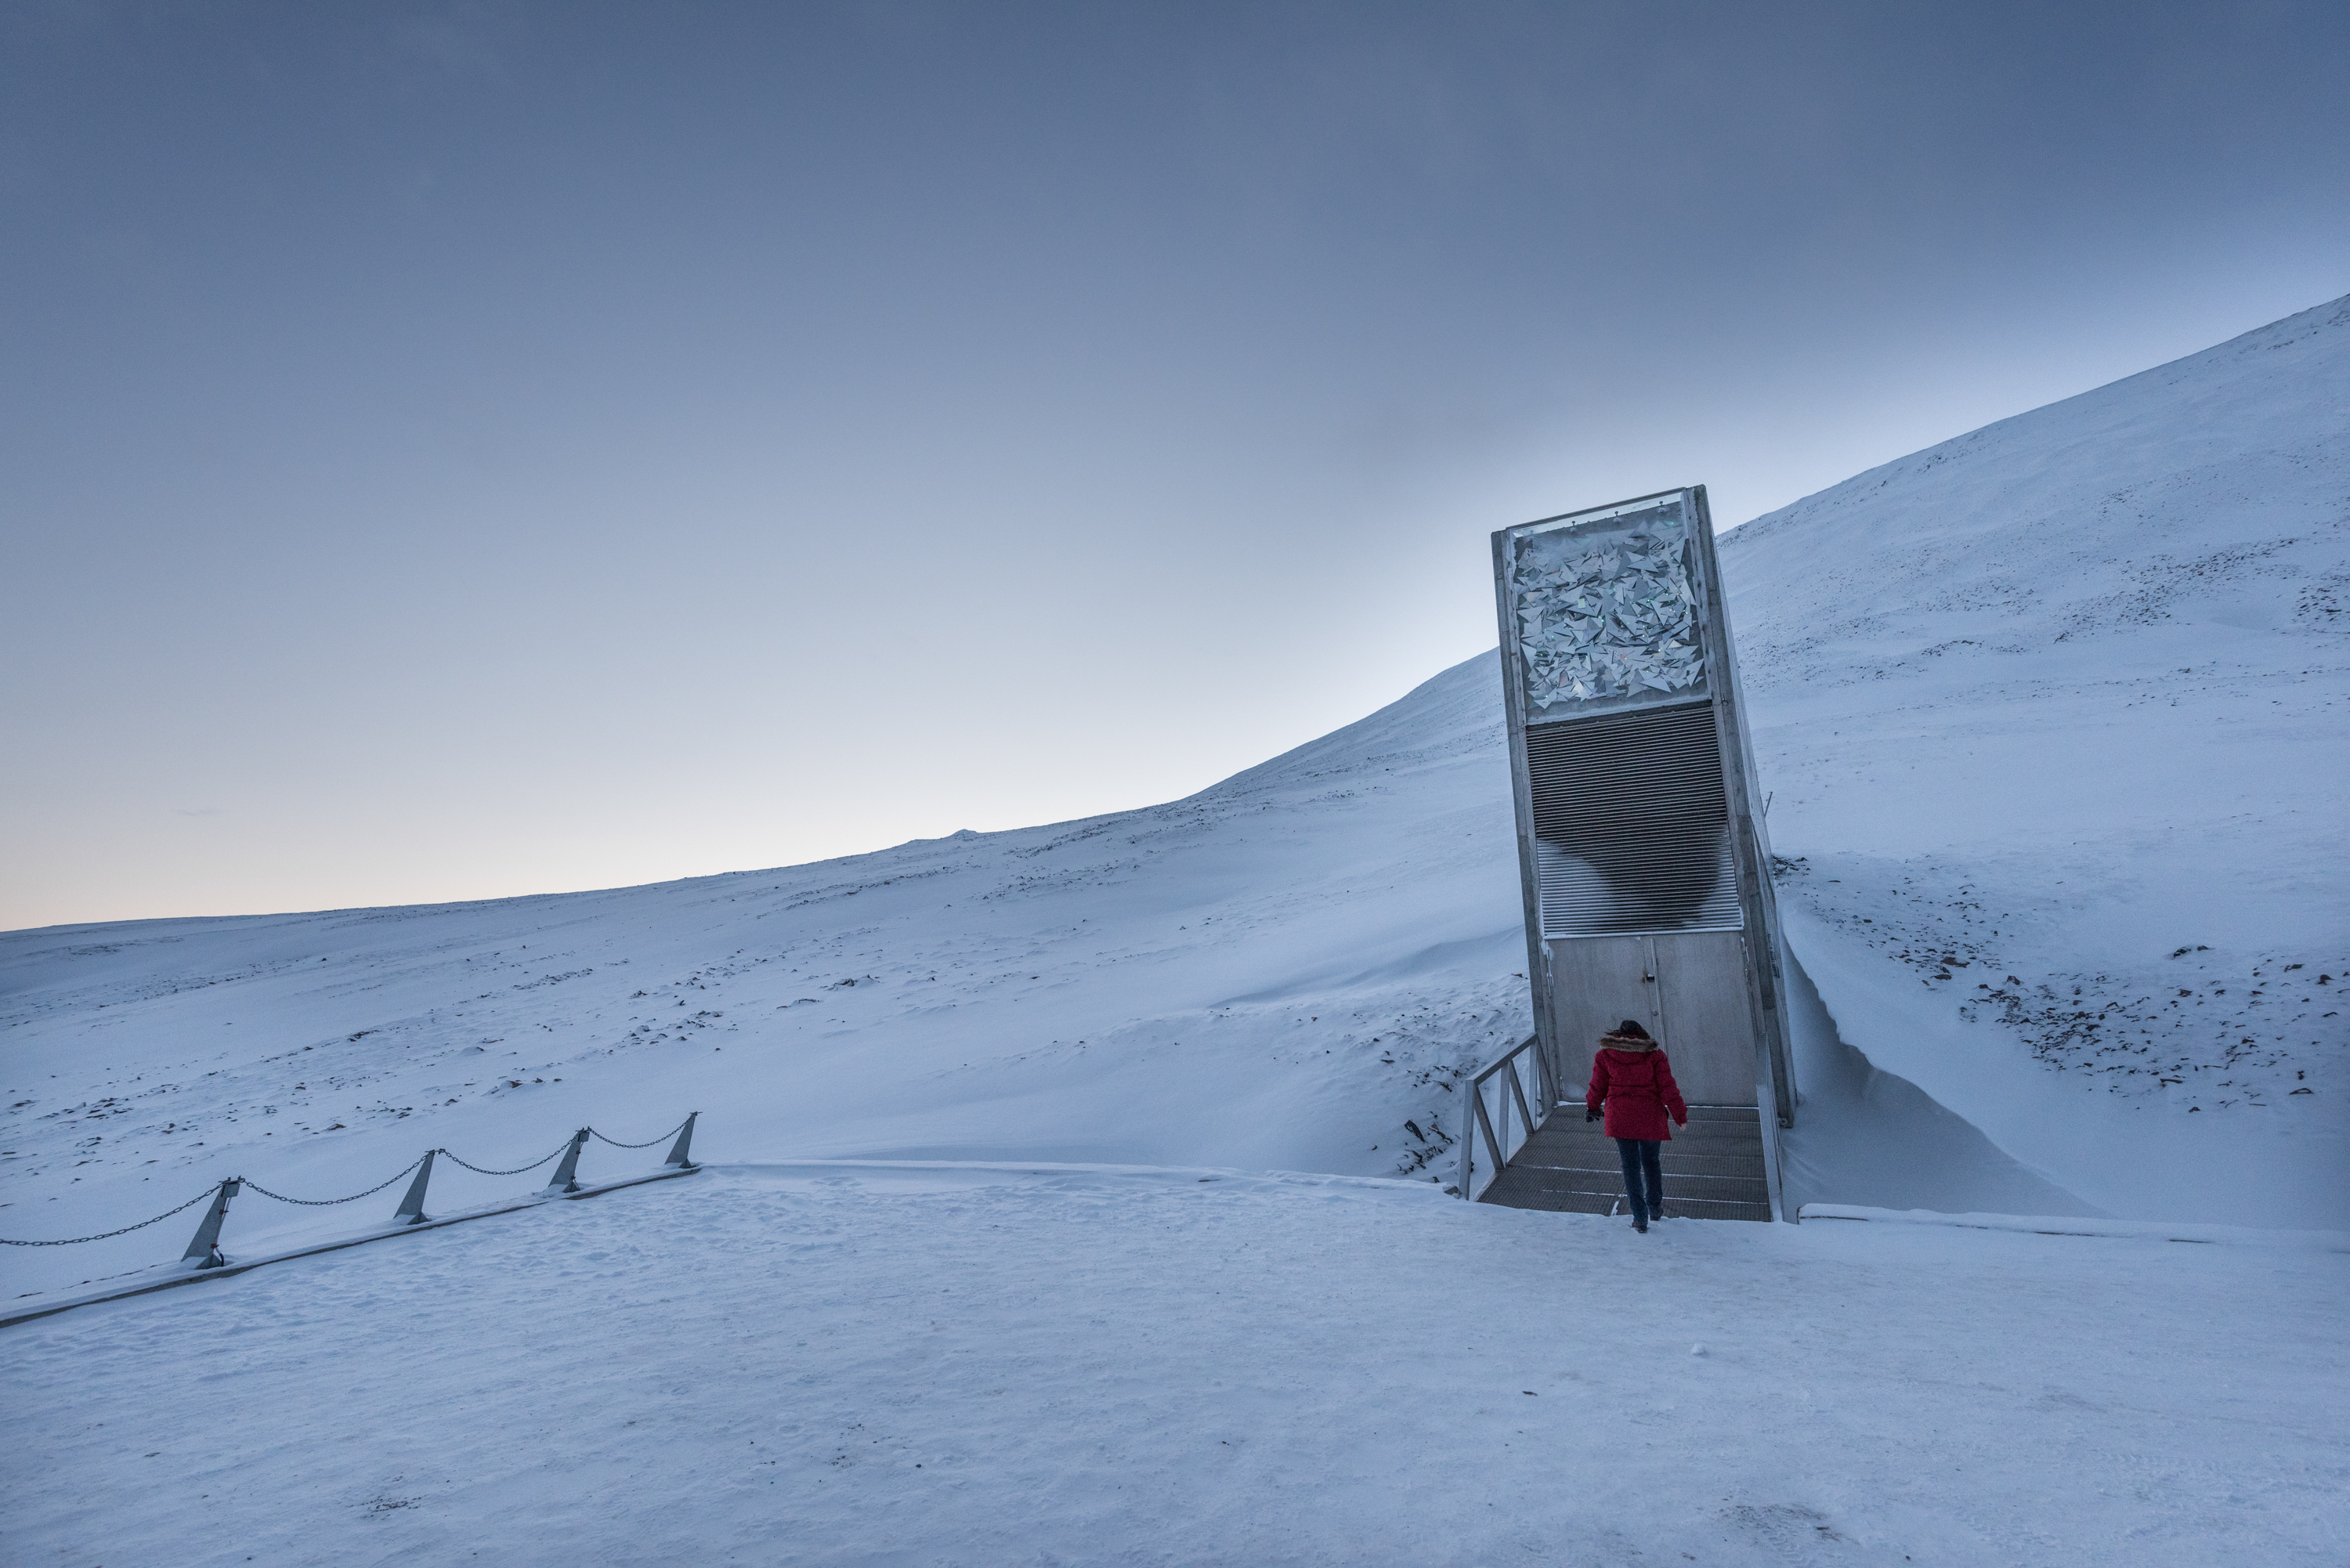 "Exterior of the Svalbard Global Seed Vault. <a href=""http://ttps://www.flickr.com/photos/croptrust/albums/72157667973253302""><em>Global Crop Diversity Trust (CC BY-NC-SA 2.0)</em></a>"